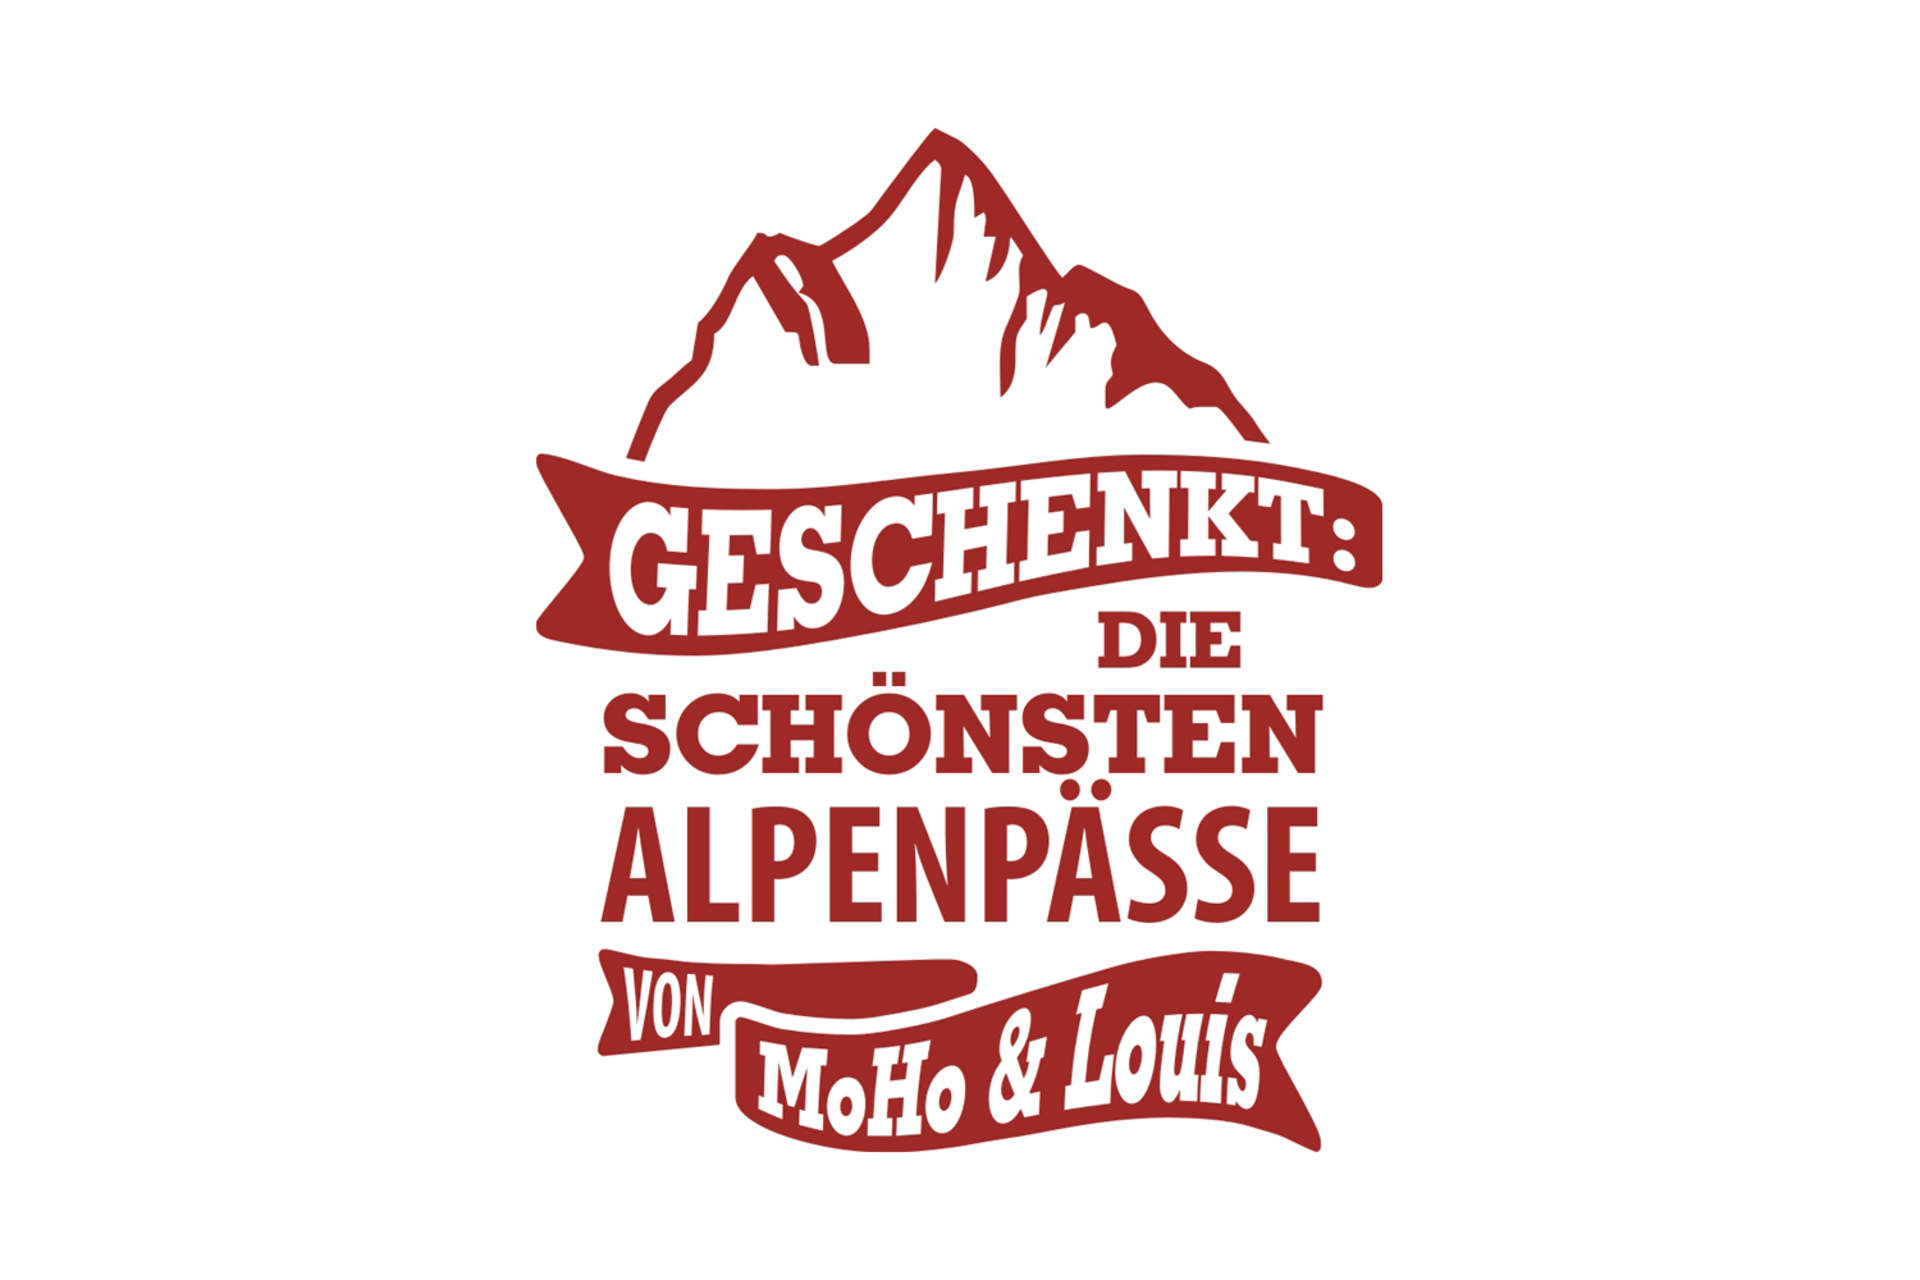 Toll free over the most beautiful passes in the Alps